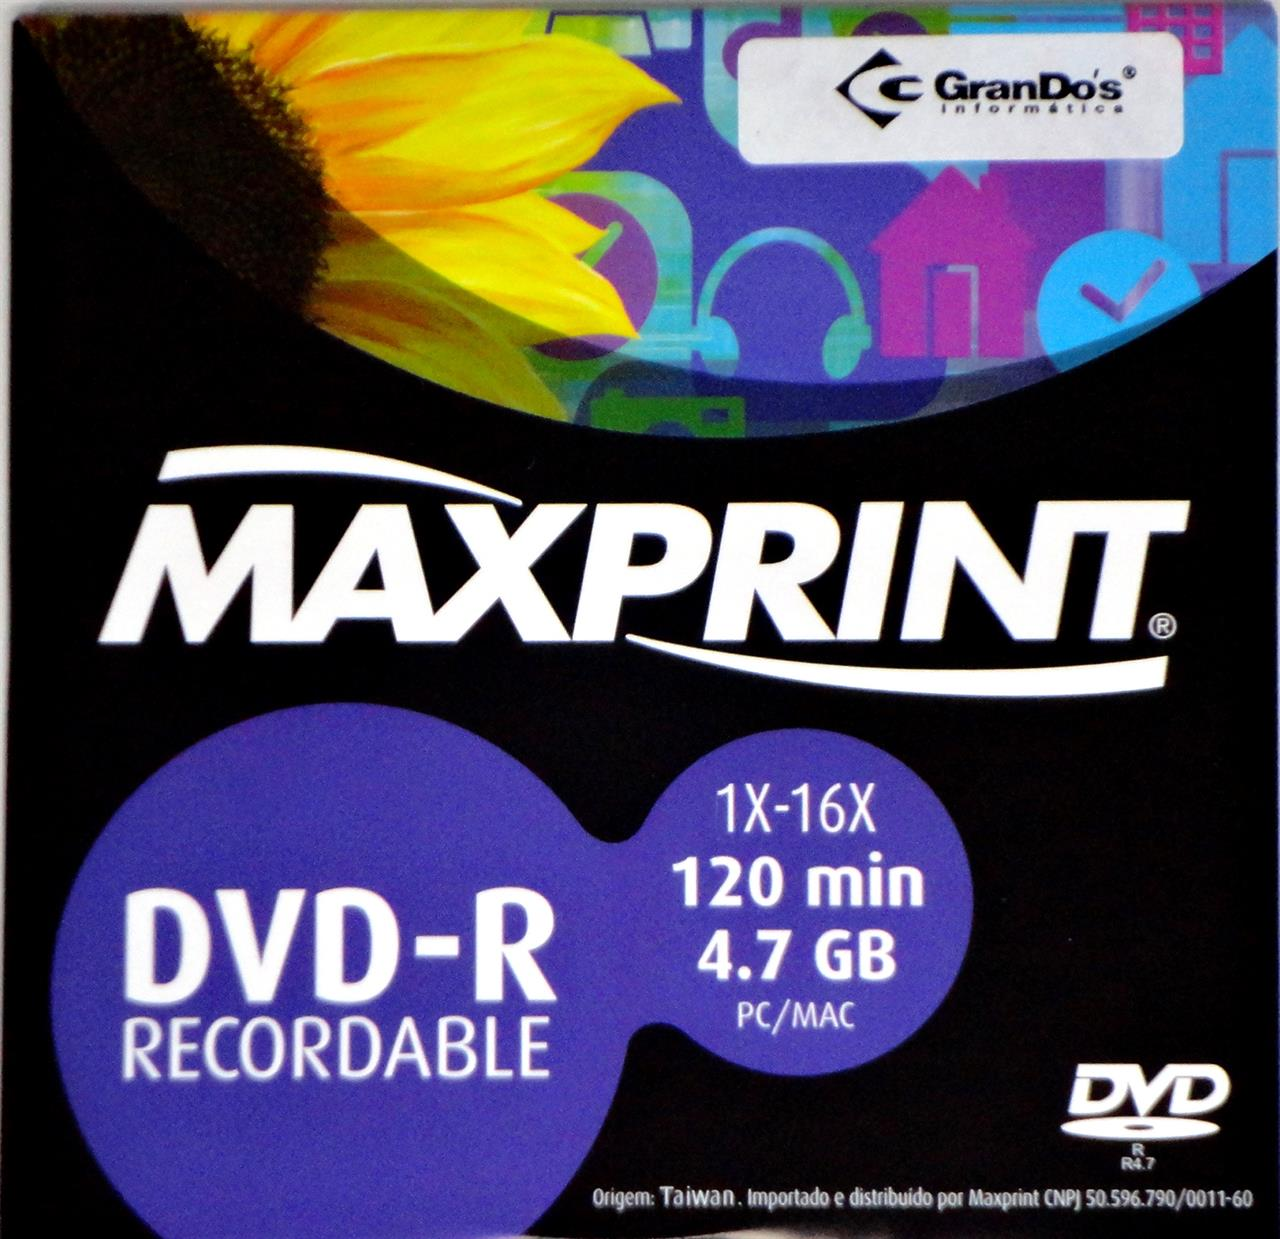 DVD-R no Envelope Maxprint 4.7